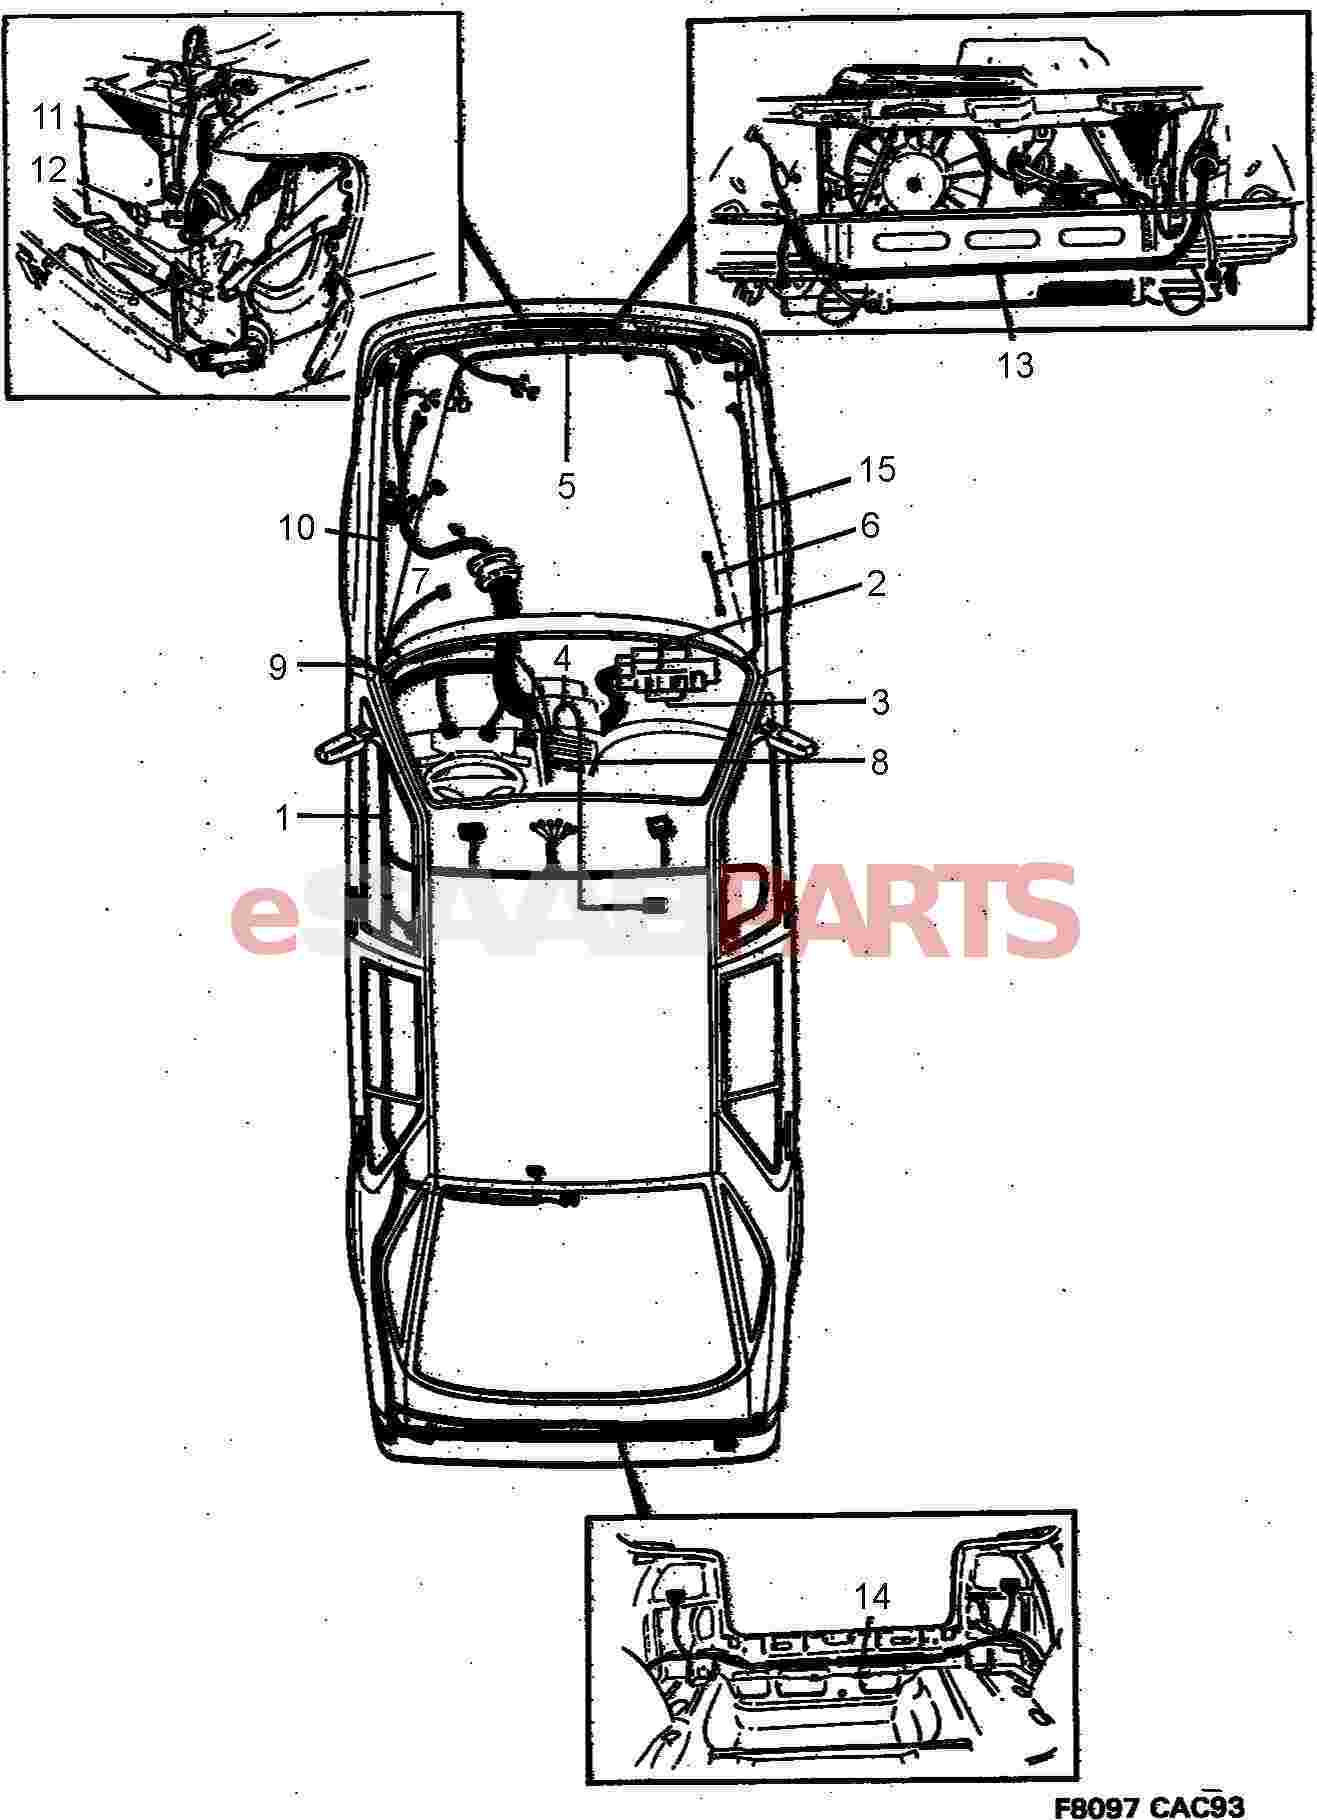 Saab 9000 Electrical Parts Wiring Harness Rac Diagram For Car Main And Engine Comp